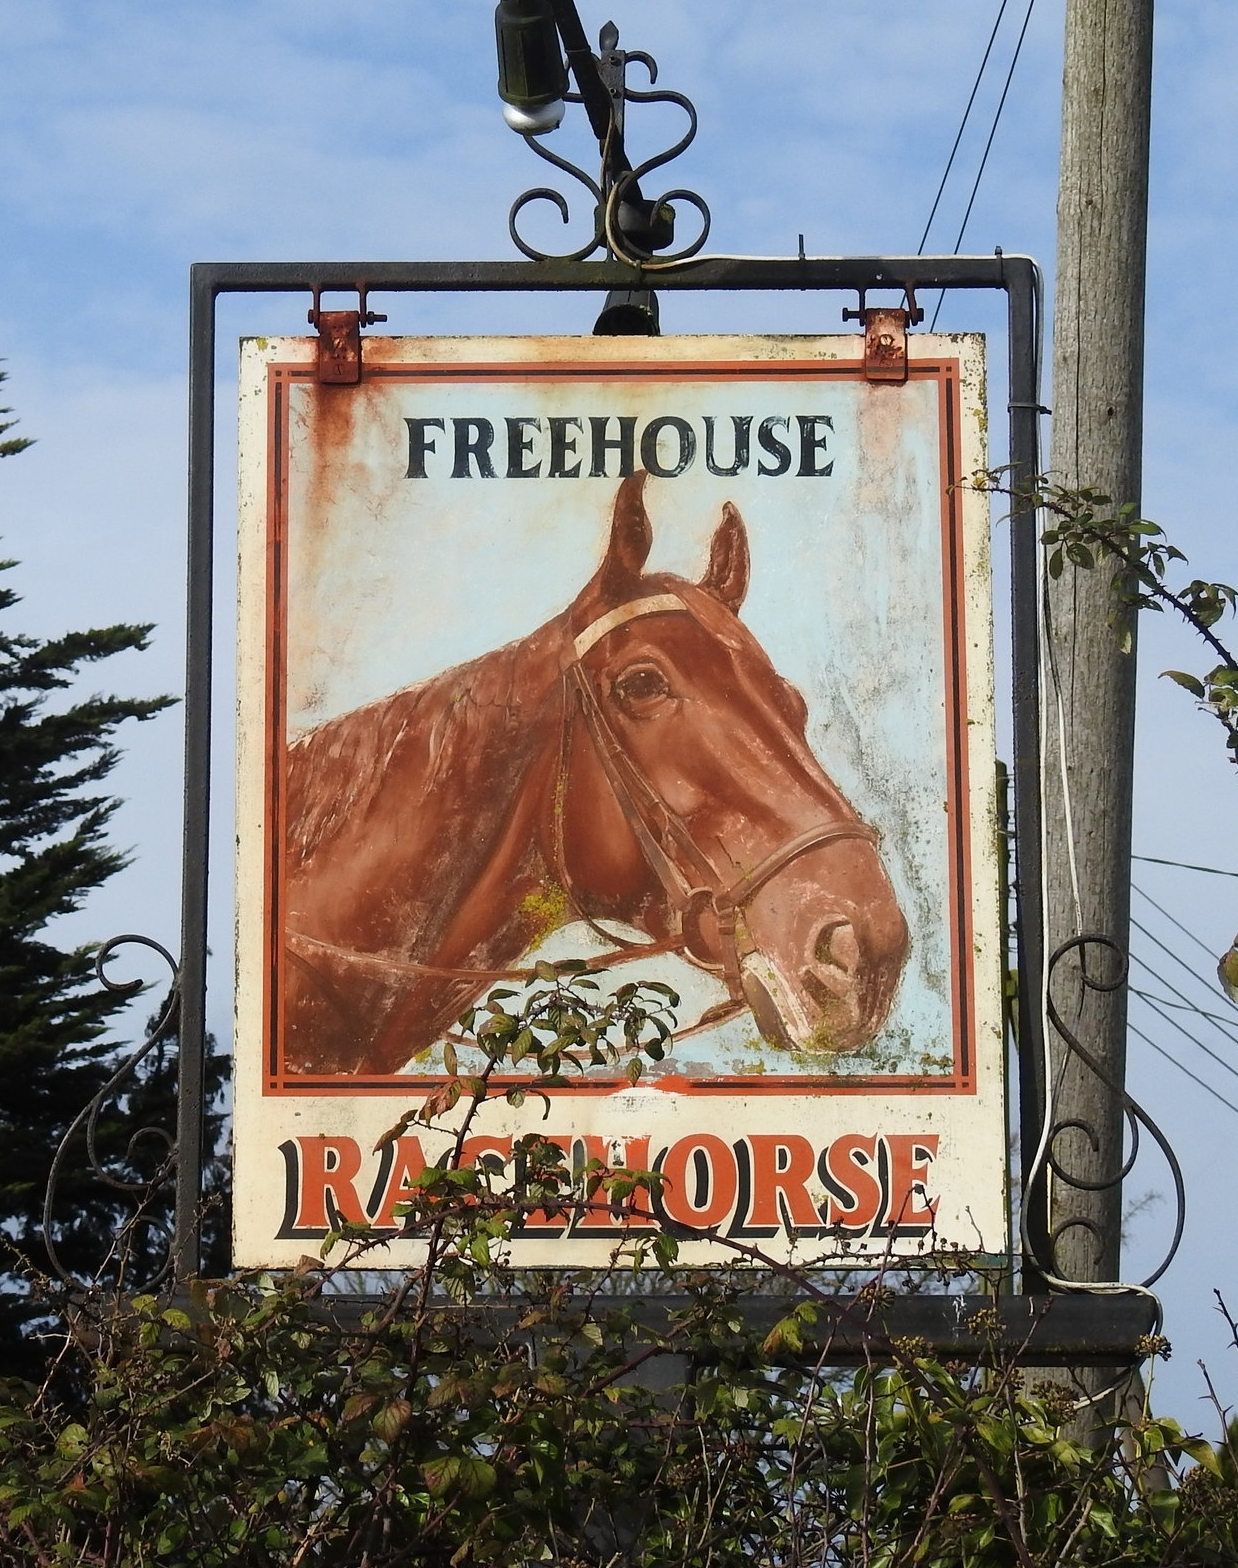 Welcome to 'The Race for The Racehorse!' - Our aim is to re-energise the Westhall Community through the acquisition and re-opening of the Racehorse Pub as a community asset.